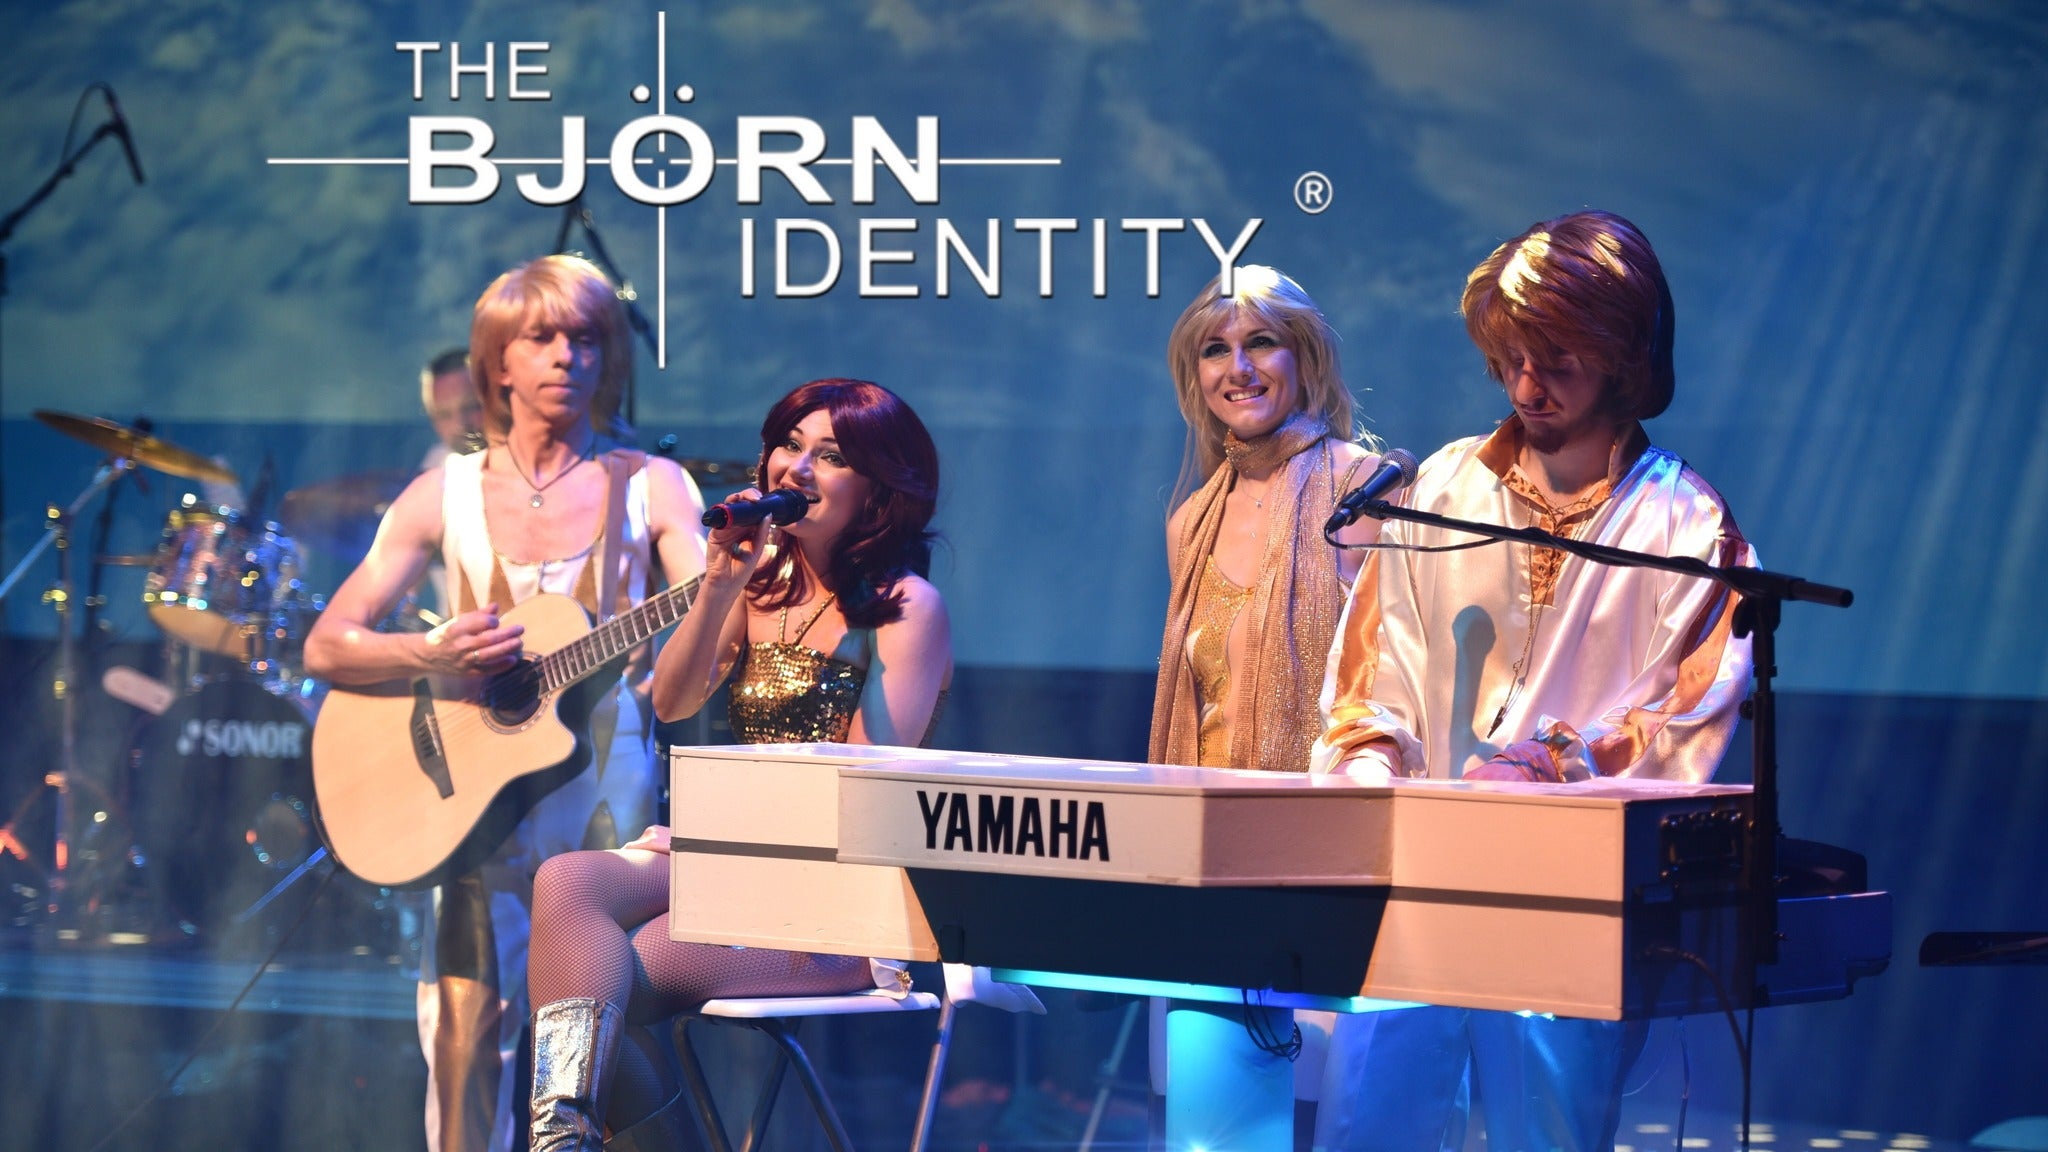 Abba - Starring Bjorn Identity tickets (Copyright © Ticketmaster)